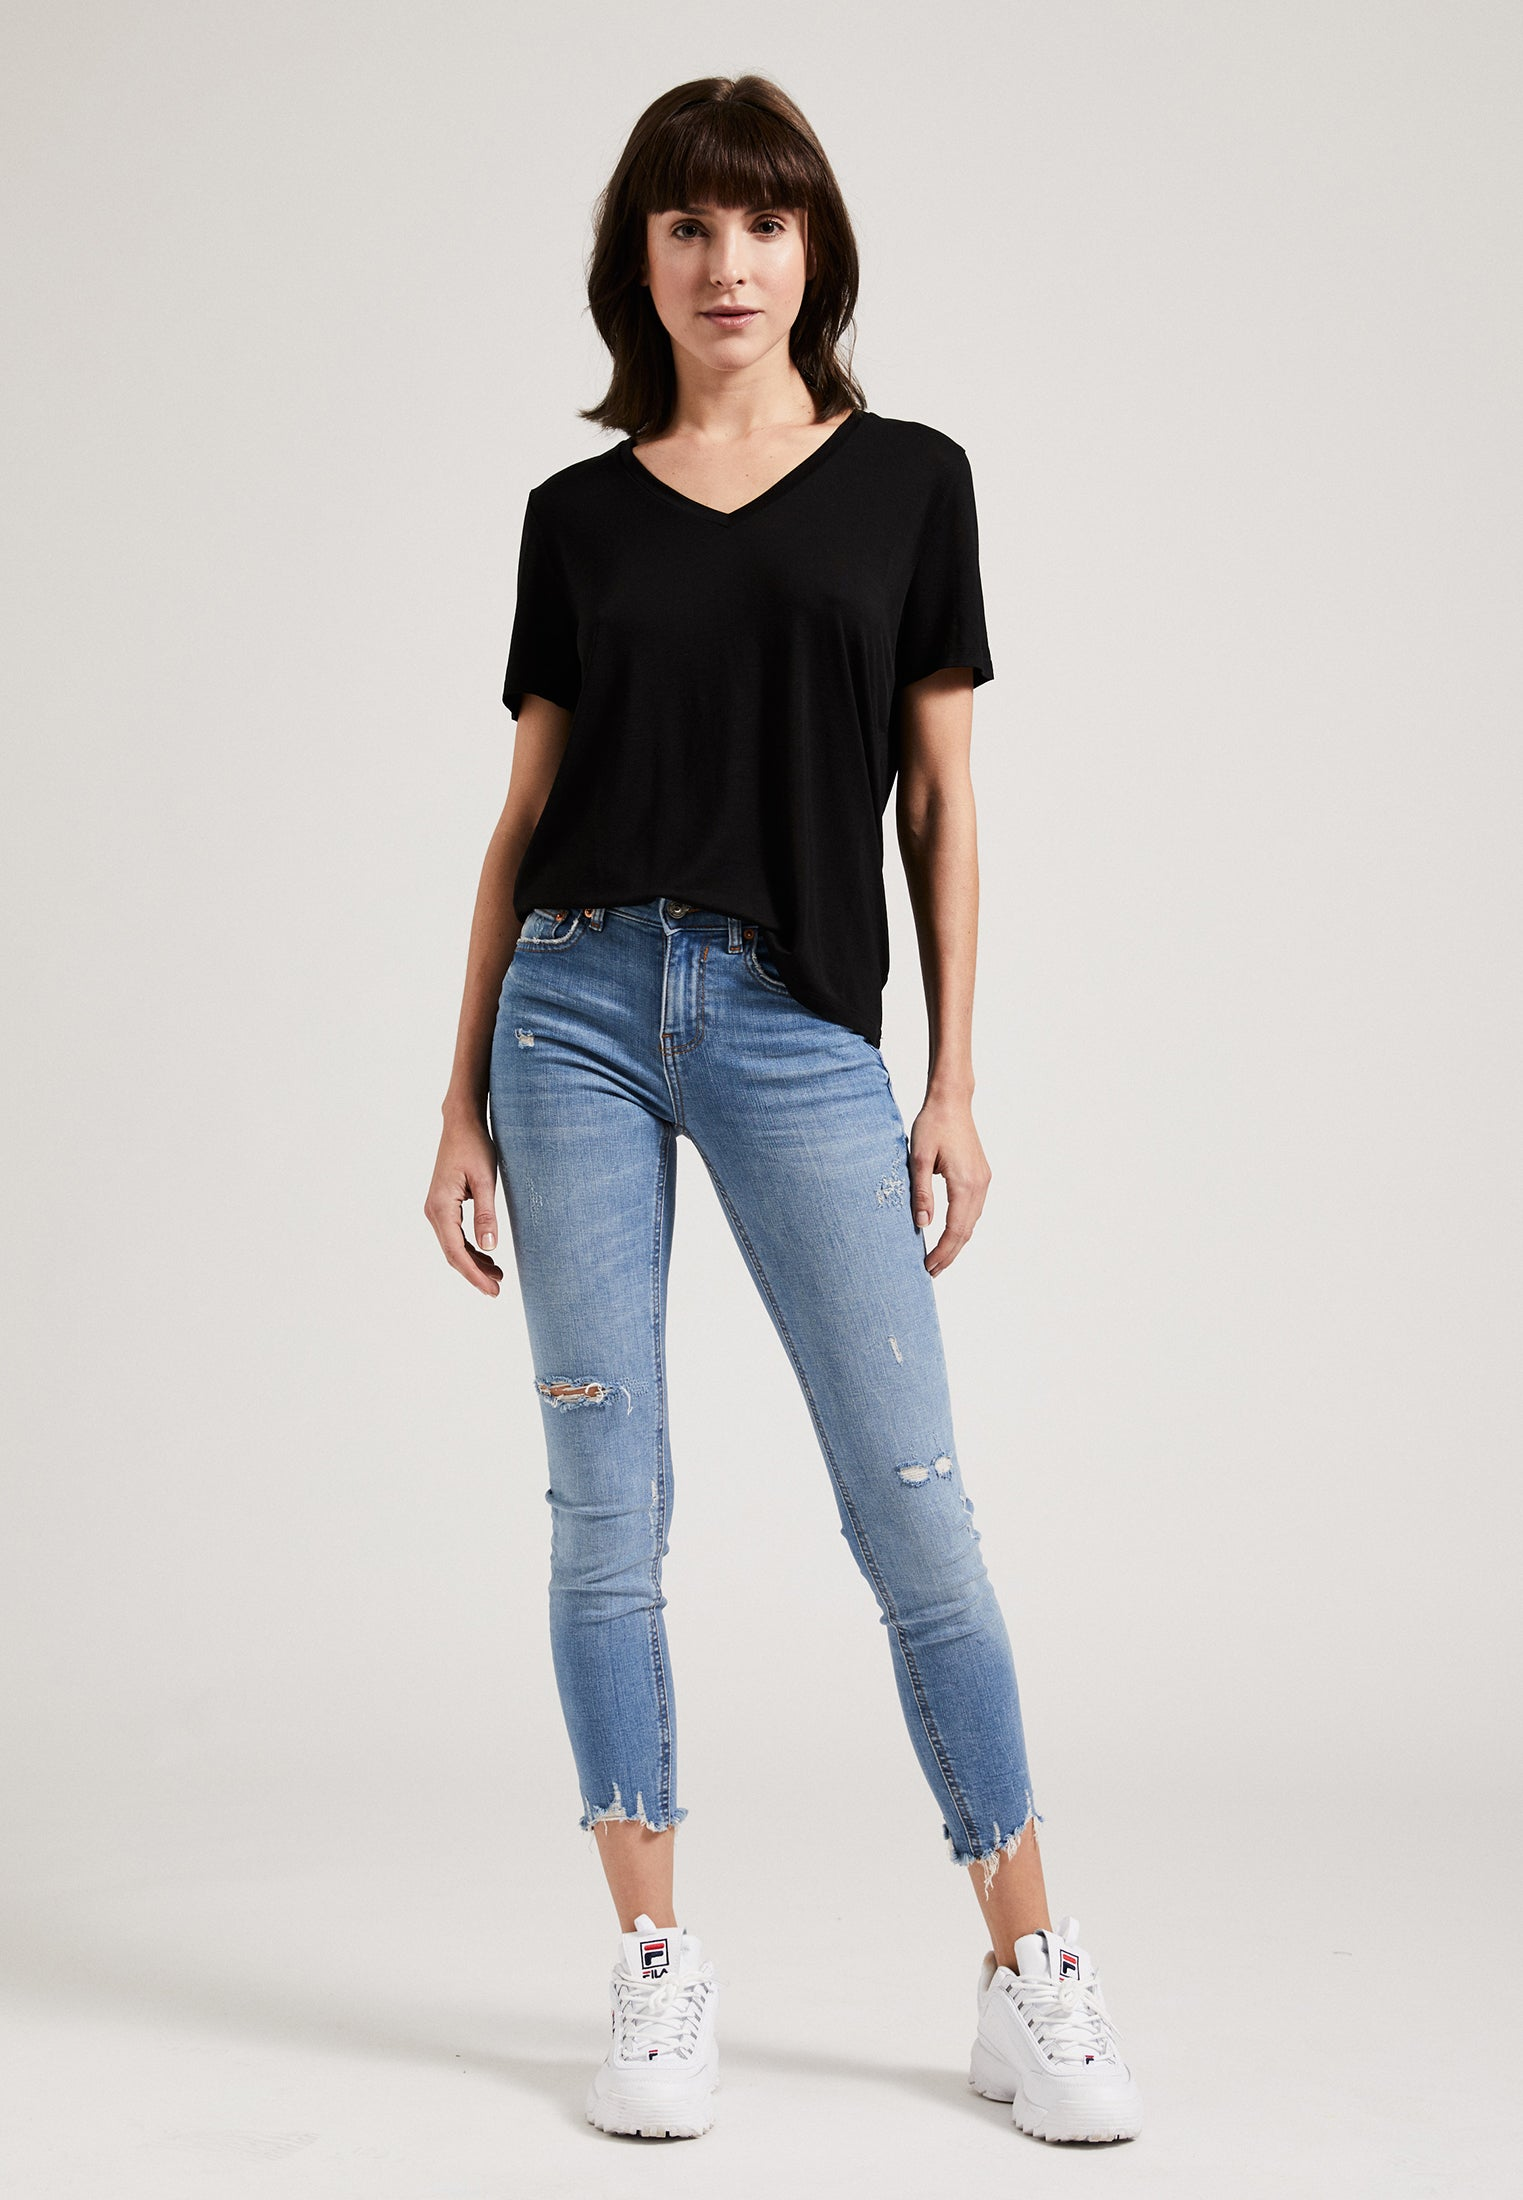 Tencel V-Neck T-Shirt Black